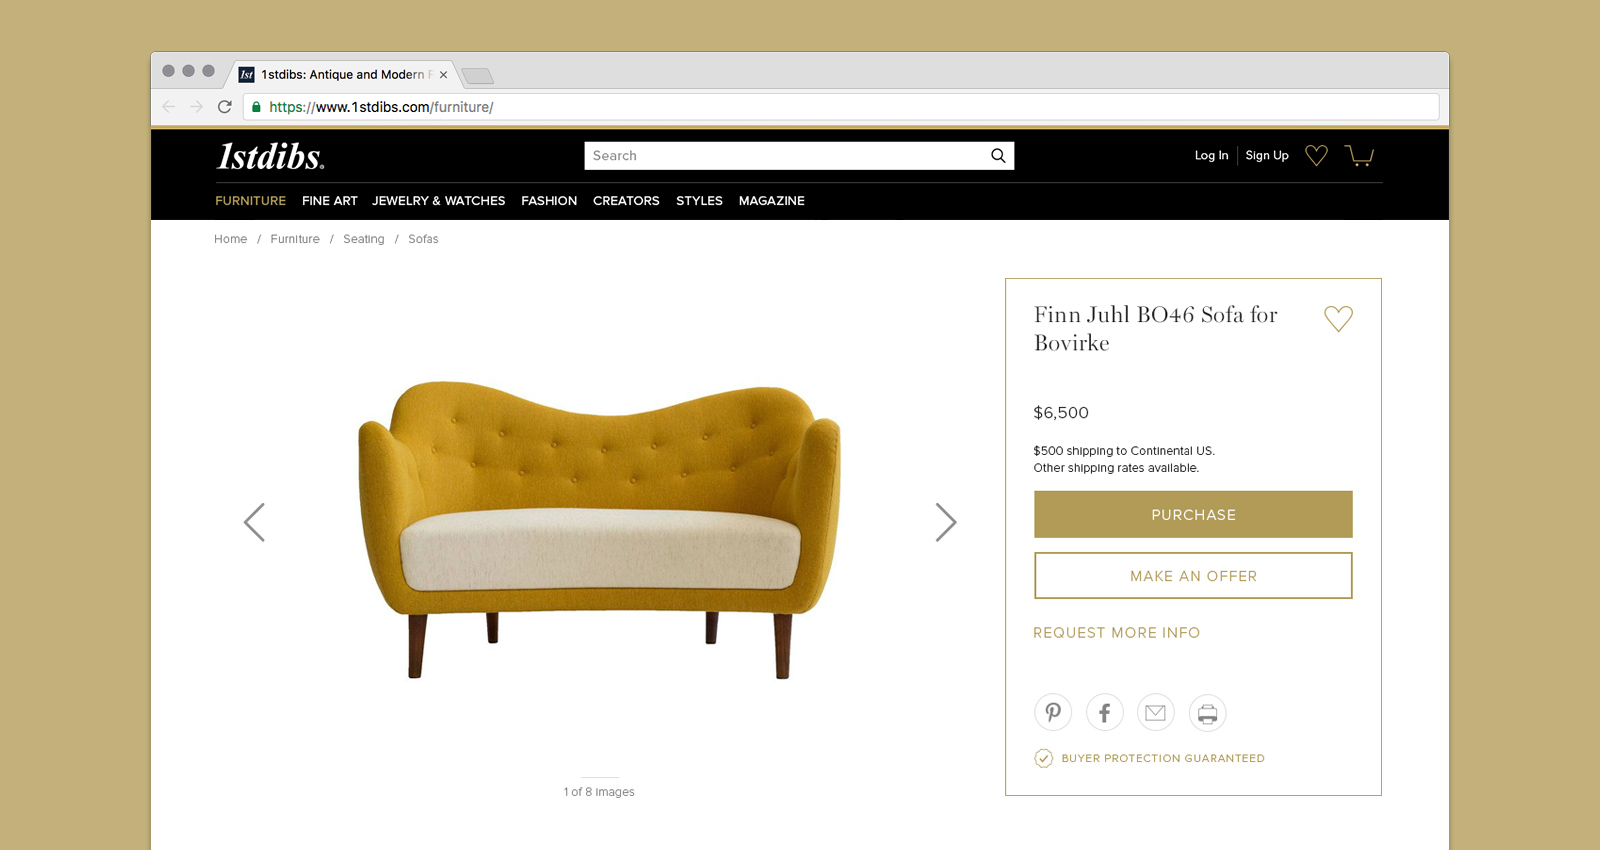 1stdibs_ecomm-feature_05